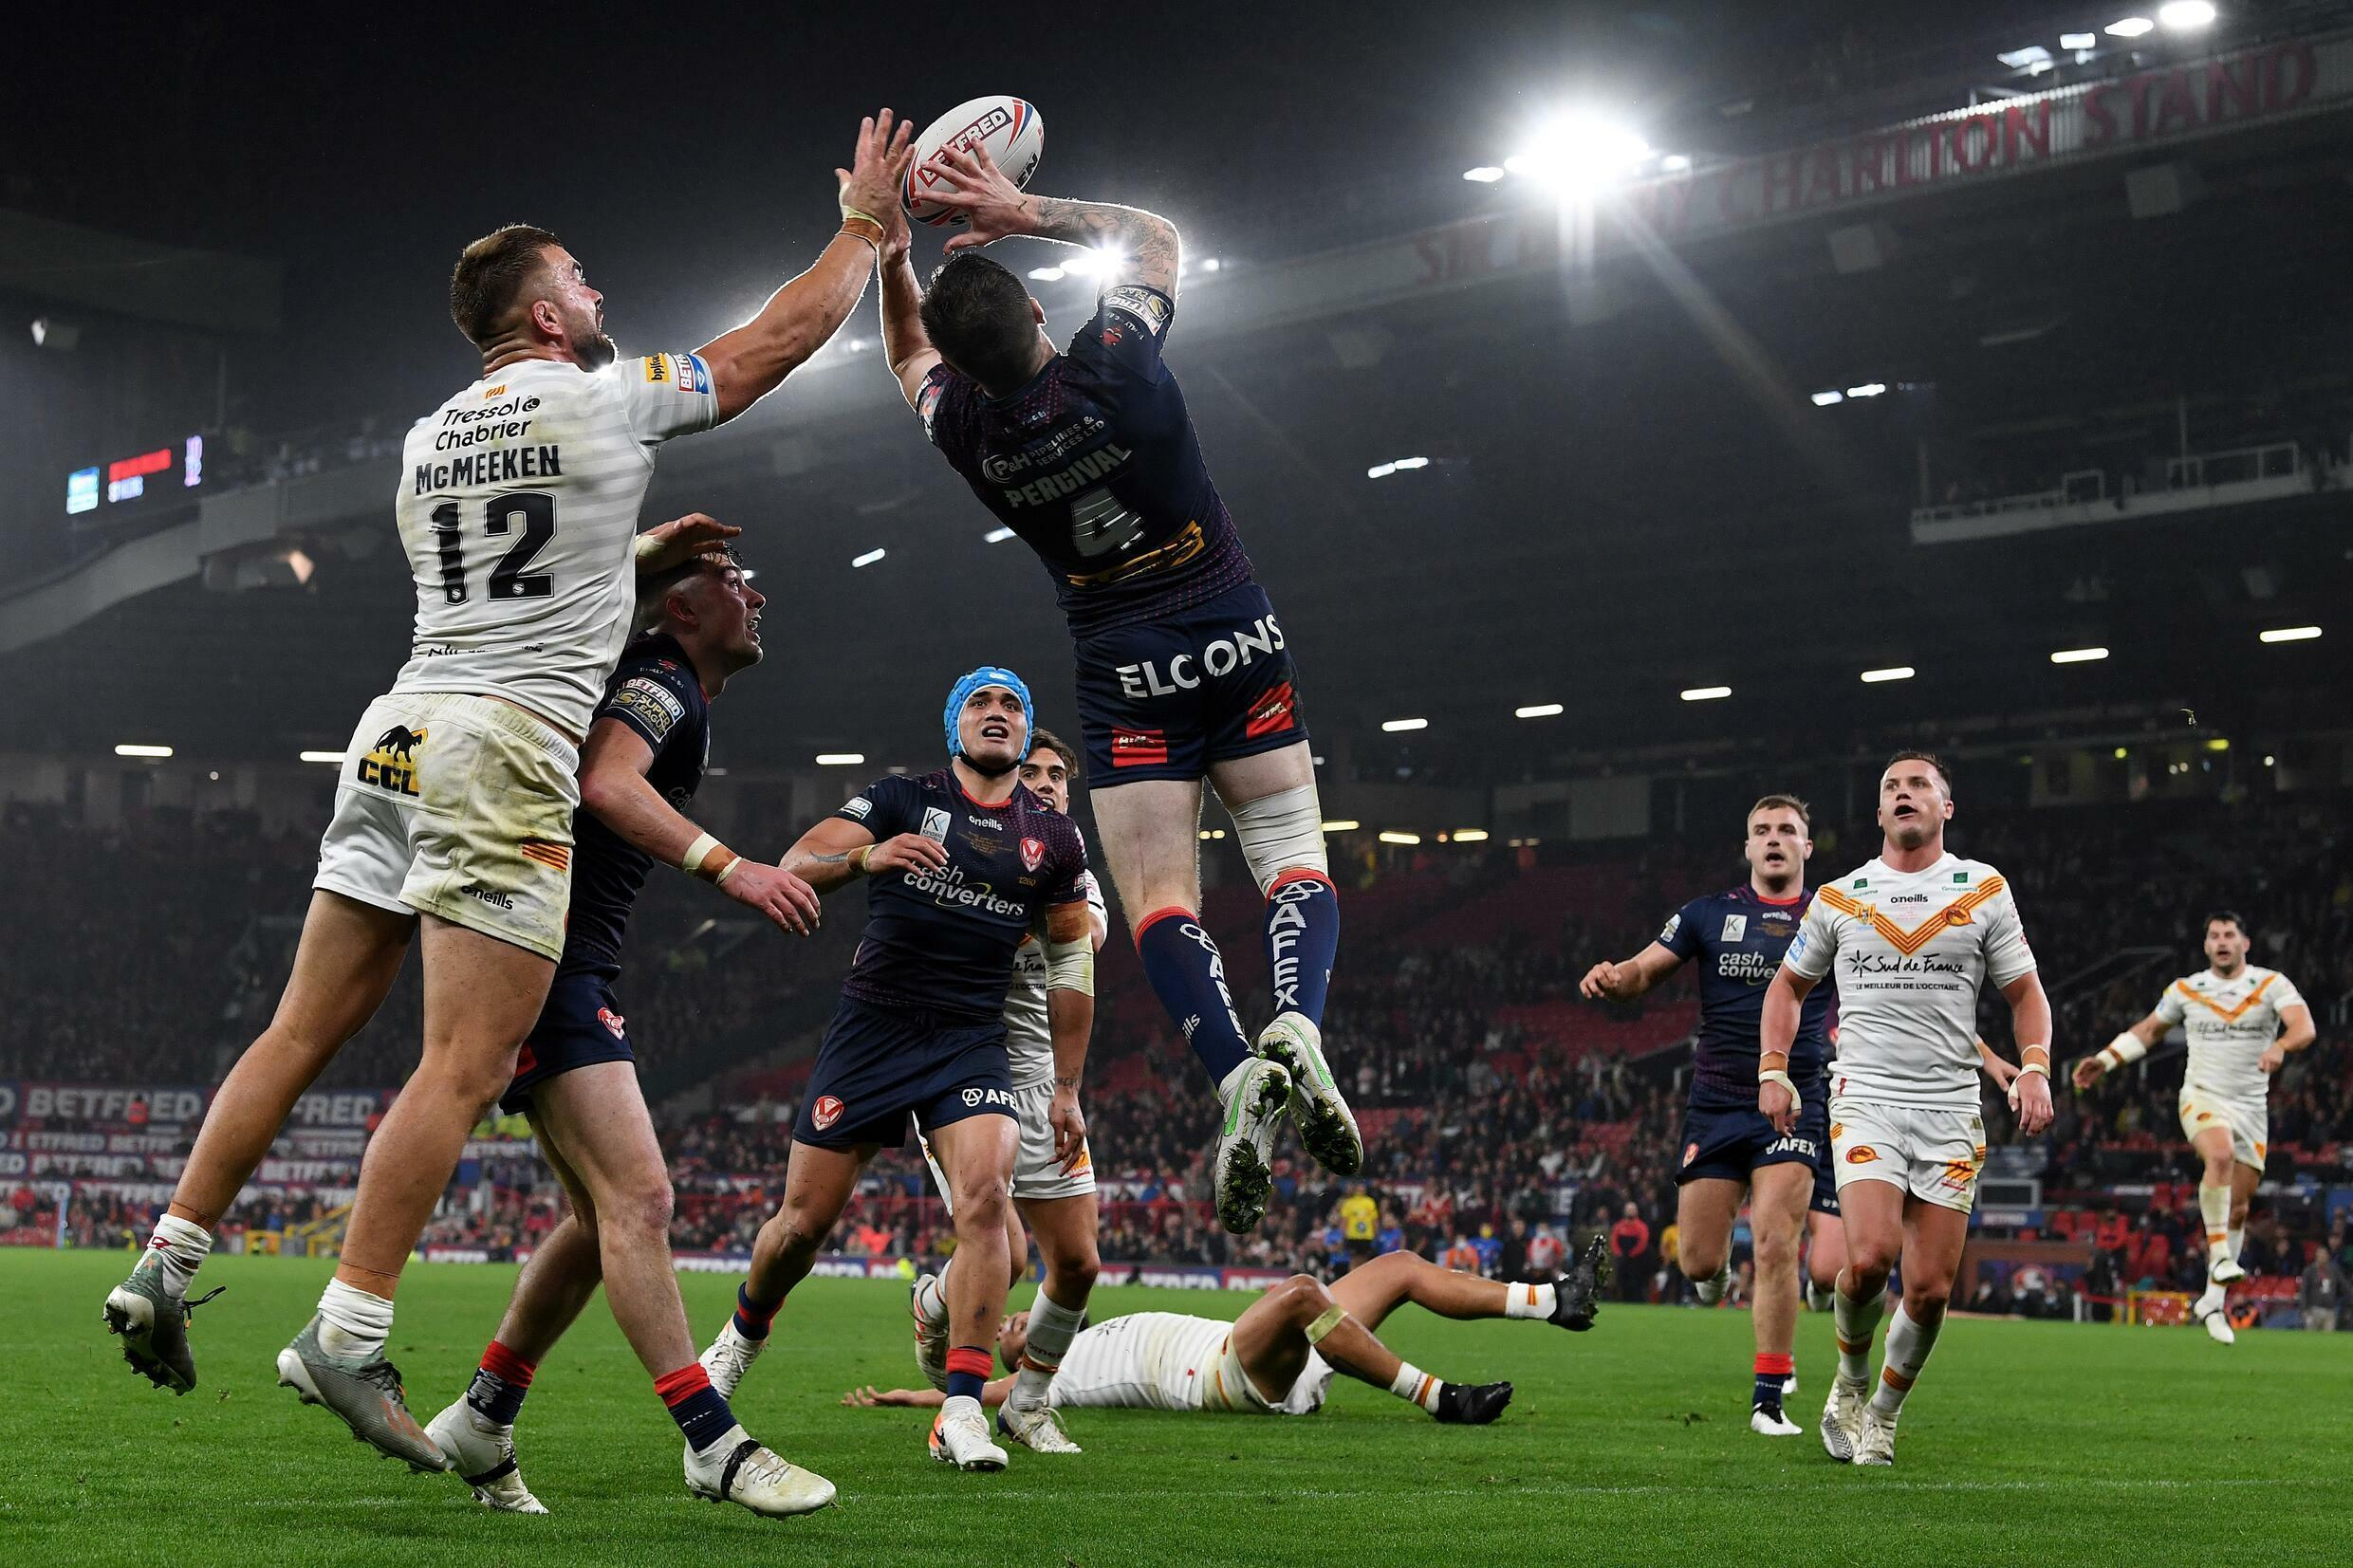 The Super League final between the Dragons and the Saints, in Manchester on October 9, 2021, resulting in a game of great intensity